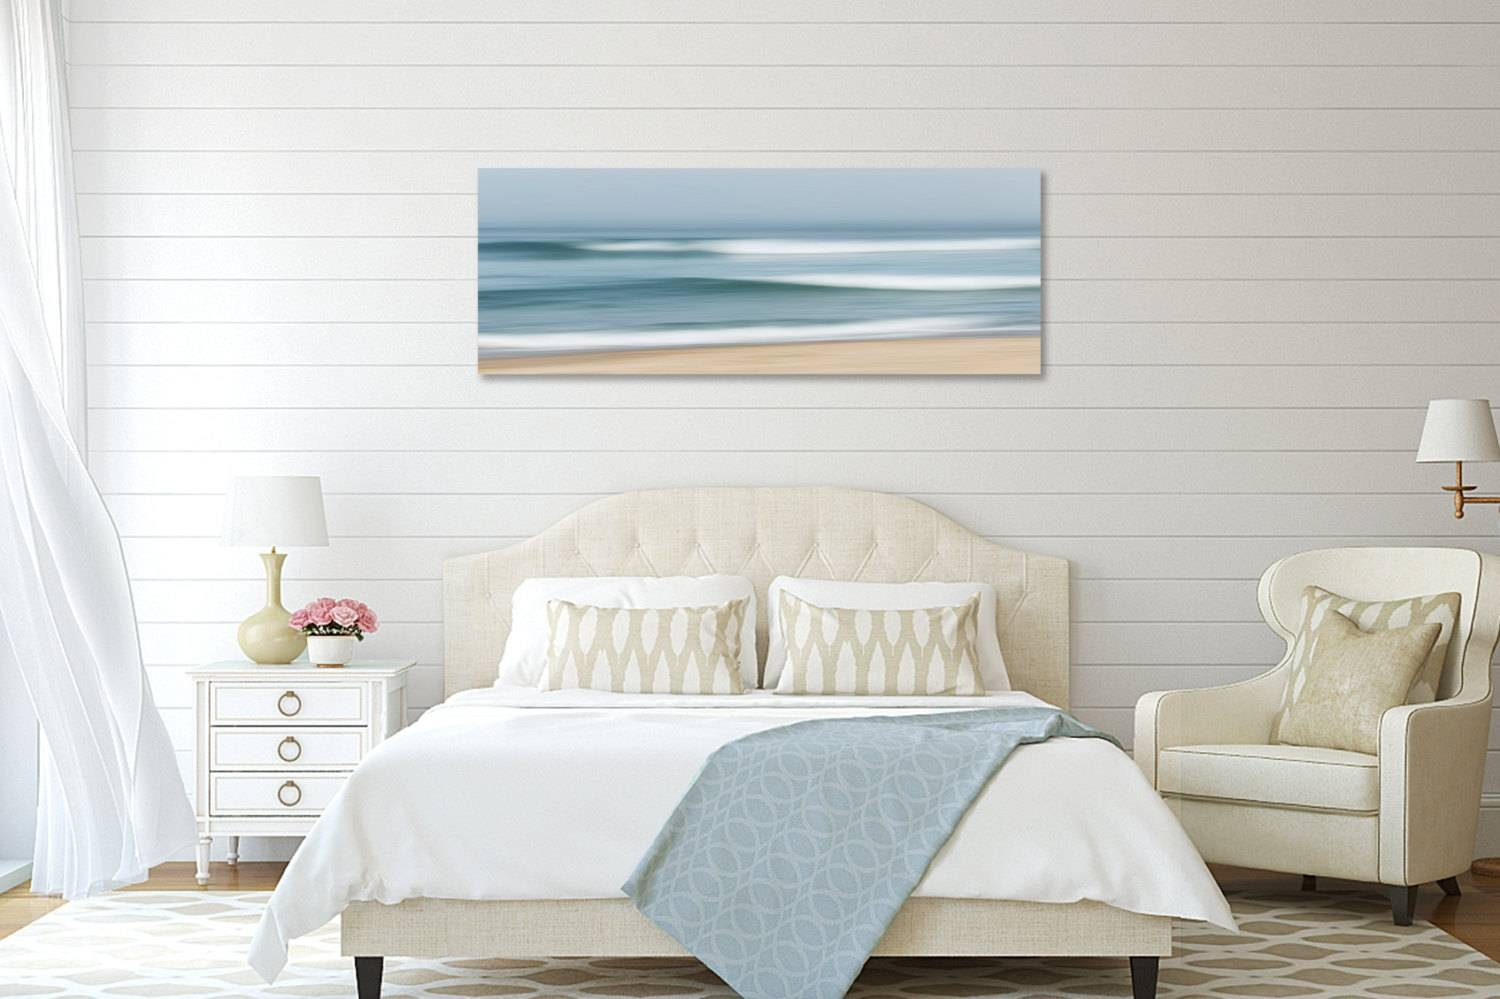 Coastal Wall Decor Large Abstract Beach Canvas Wall Art With Regard To Newest Coastal Wall Art Decor (View 14 of 20)